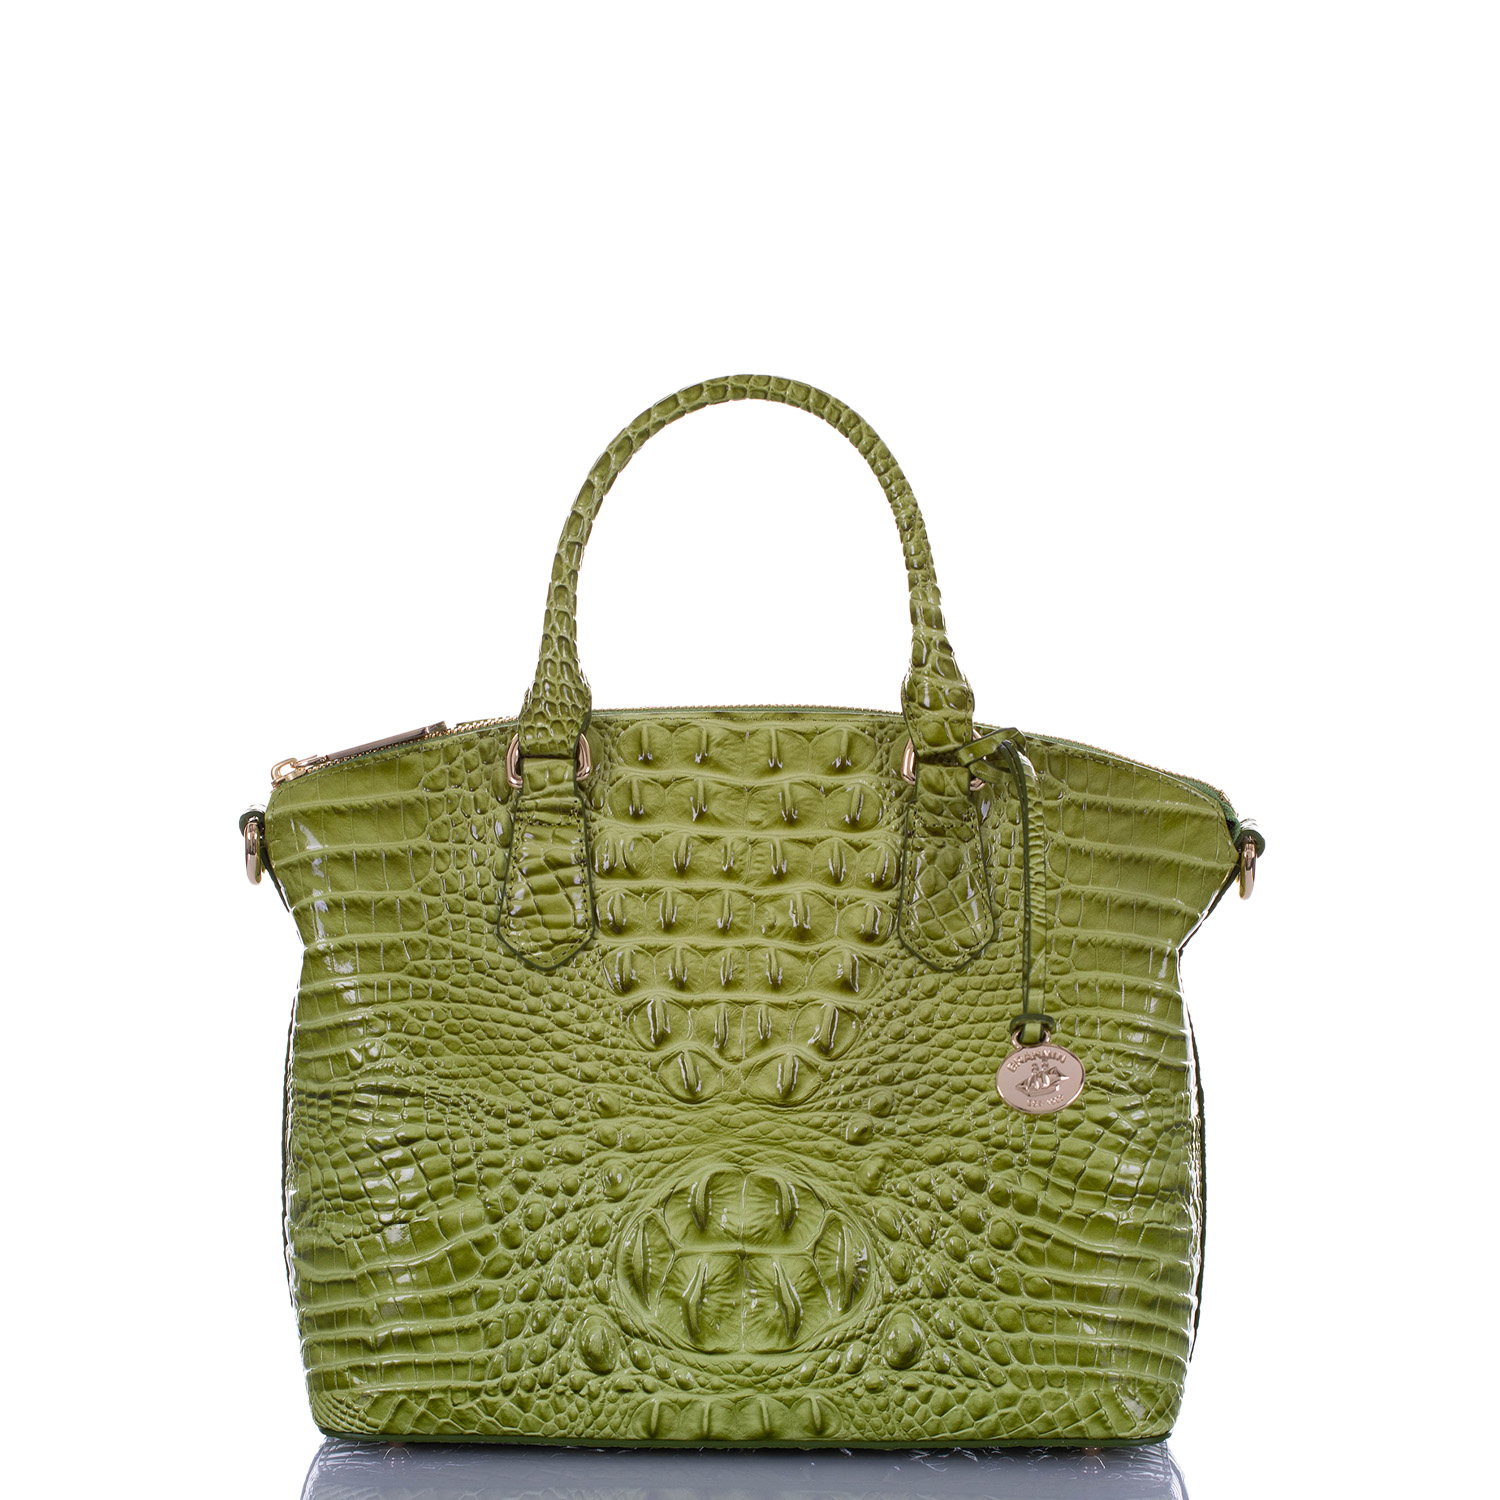 Duxbury Satchel Avocado Melbourne